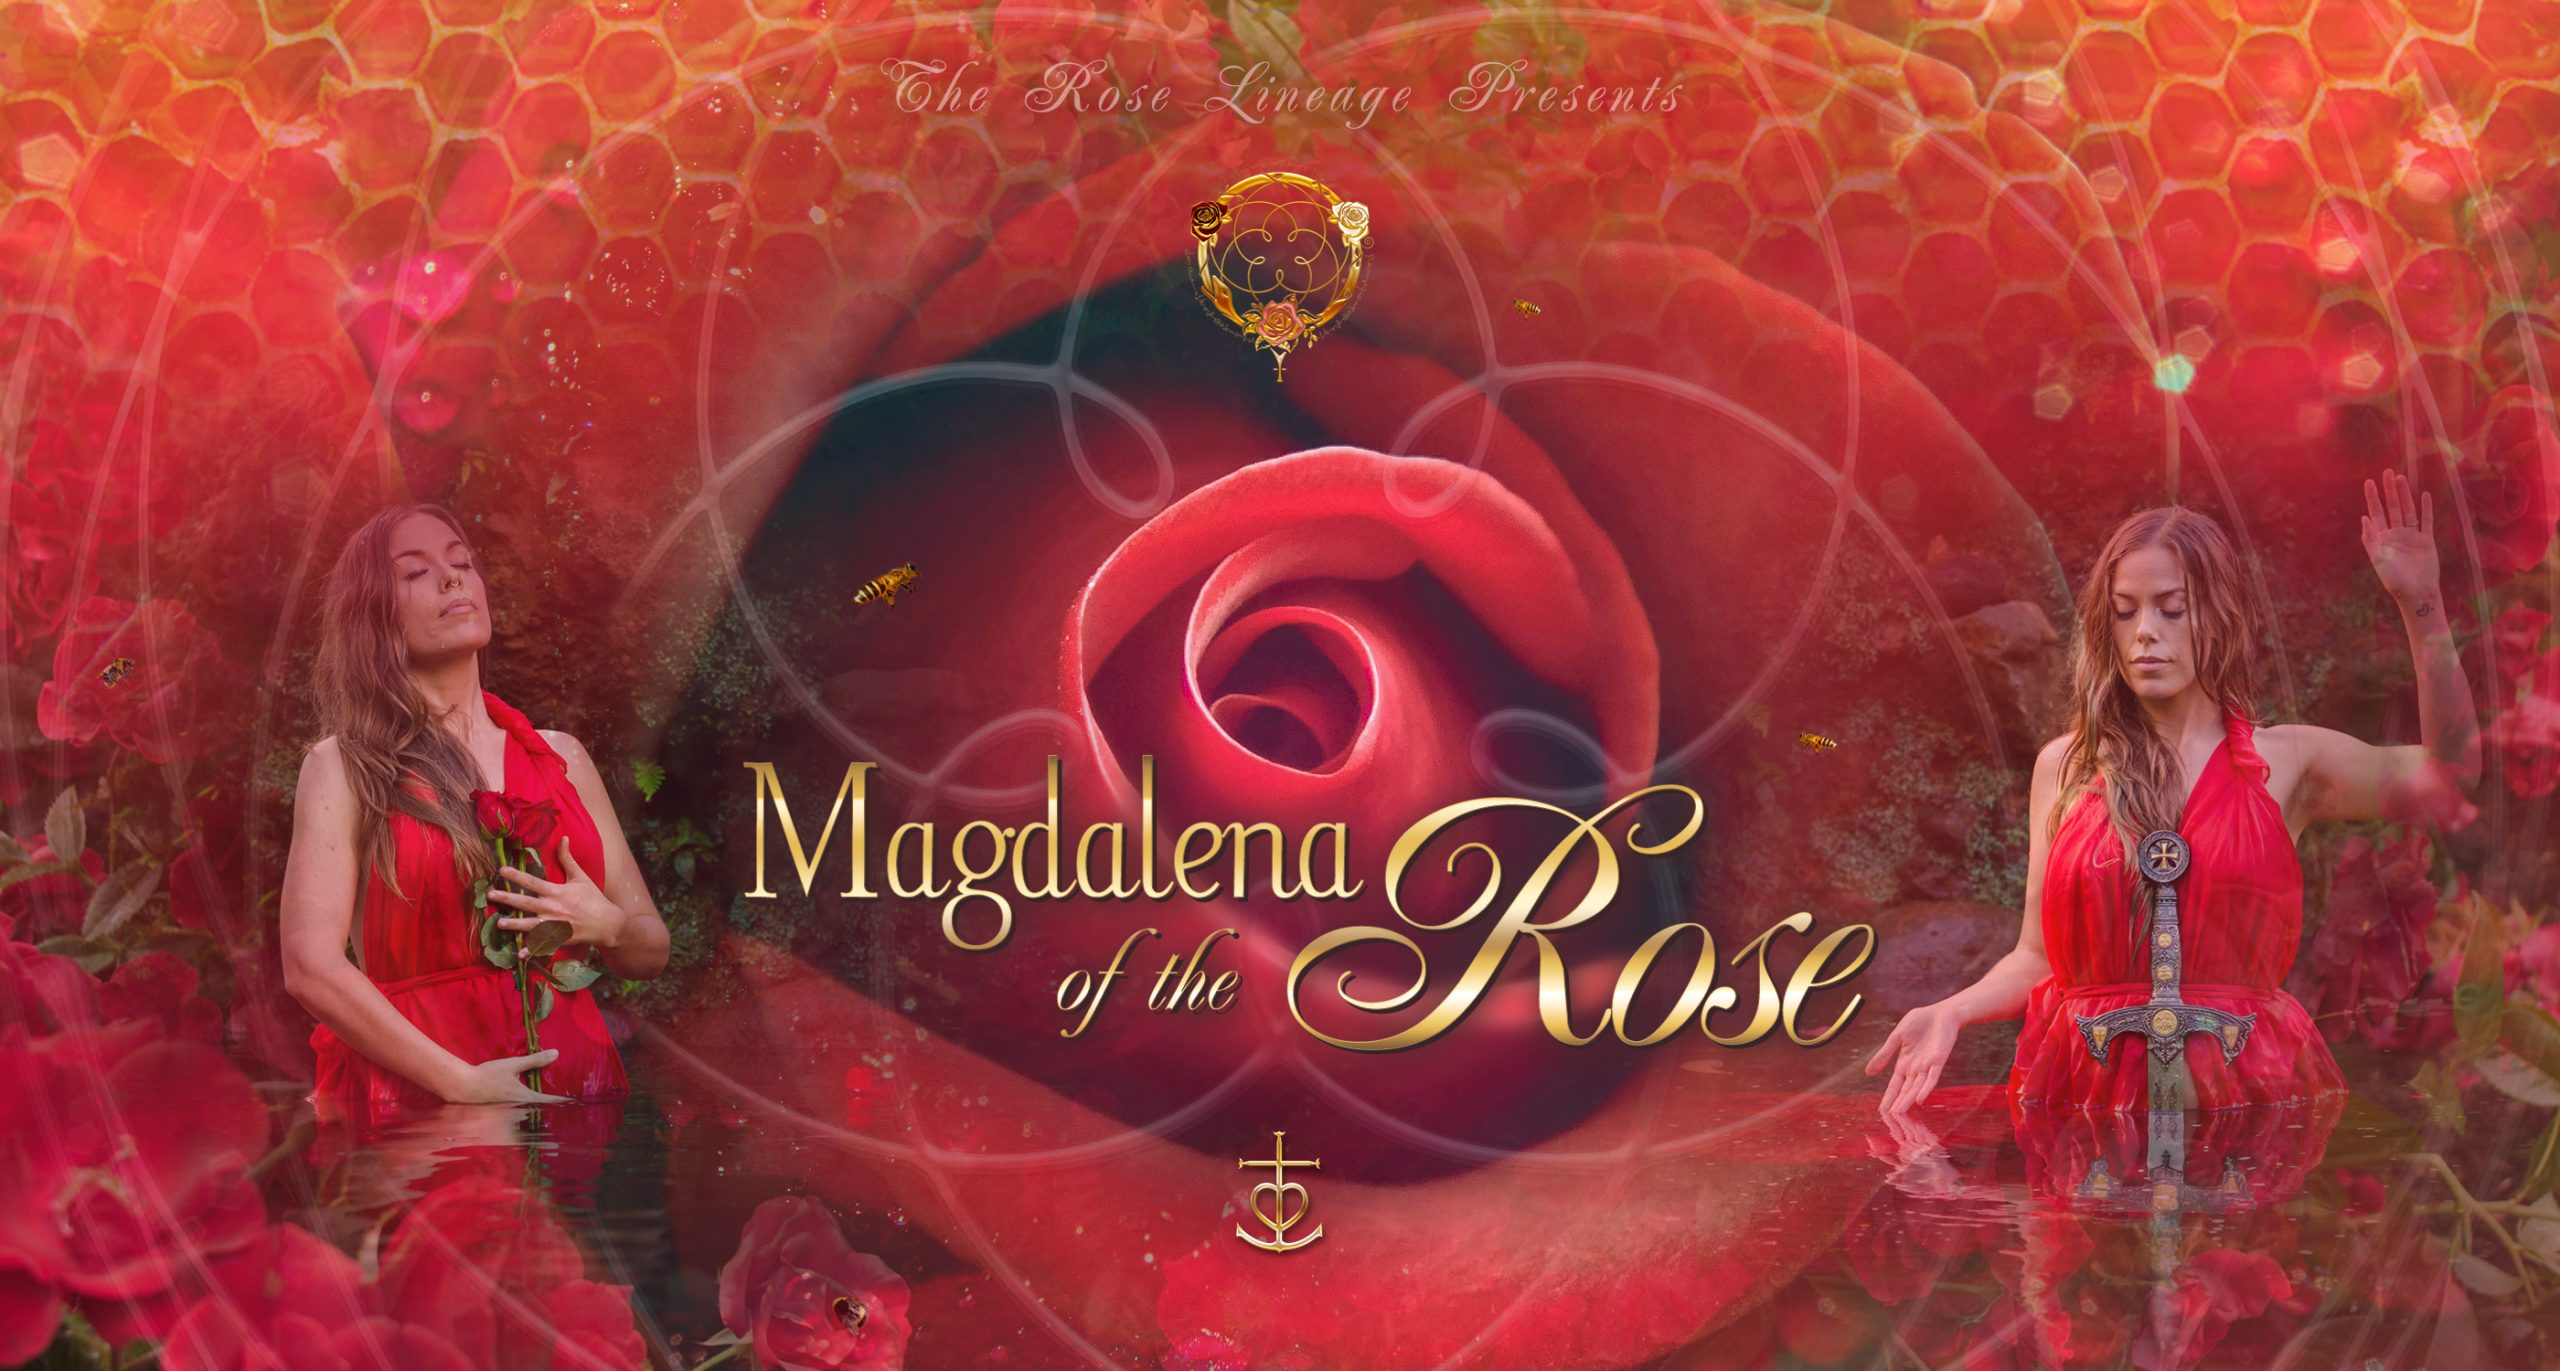 Magdalena of the Rose